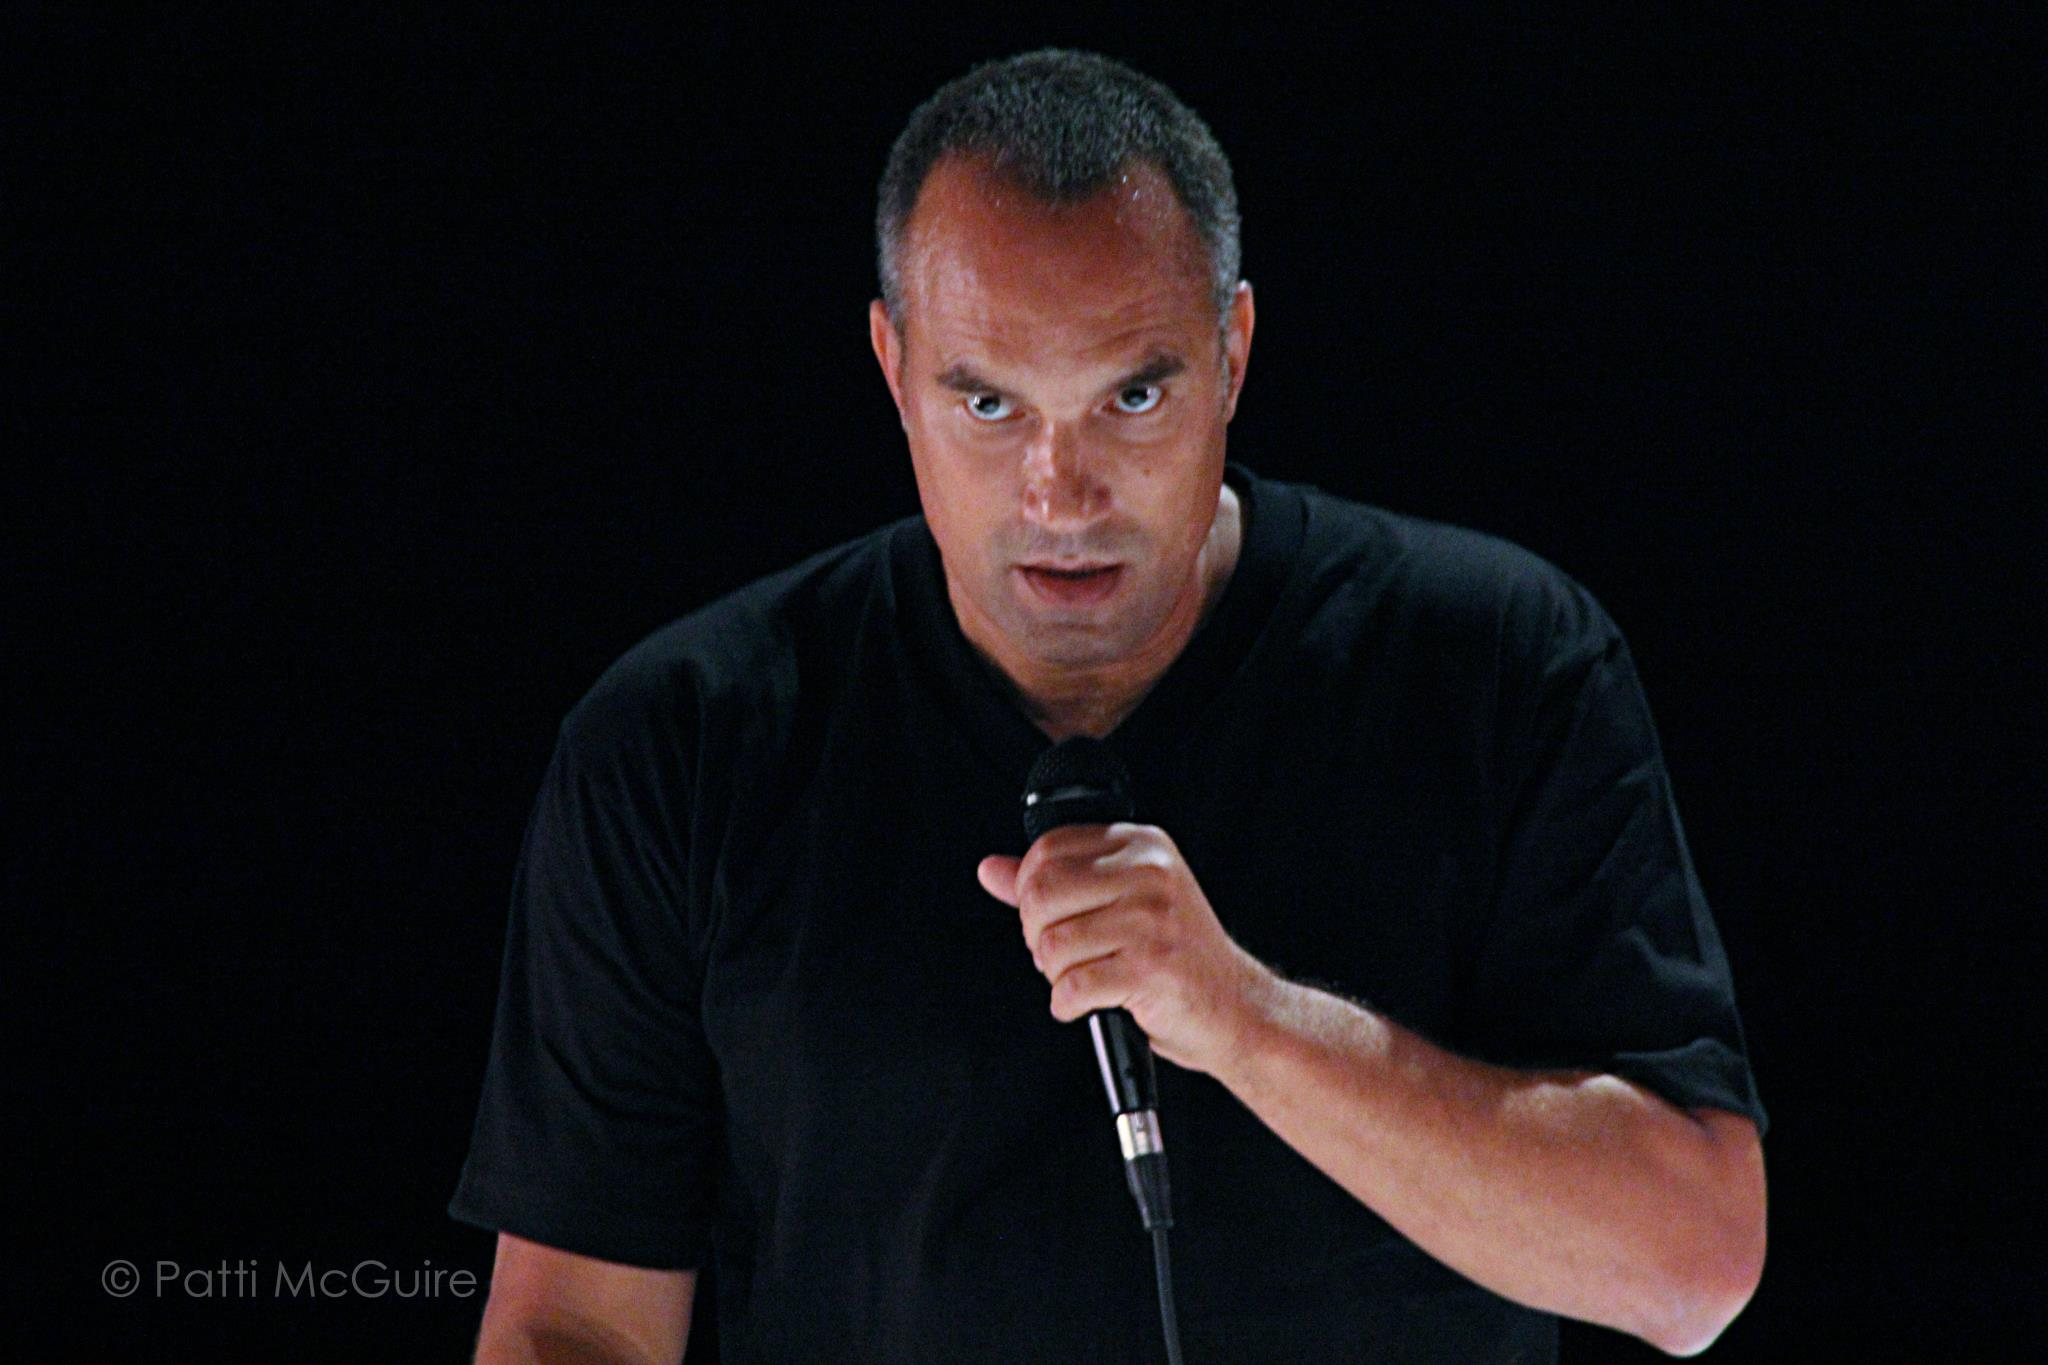 Roger Guenveur Smith as Rodney King. (Photo by Patti McGuire)